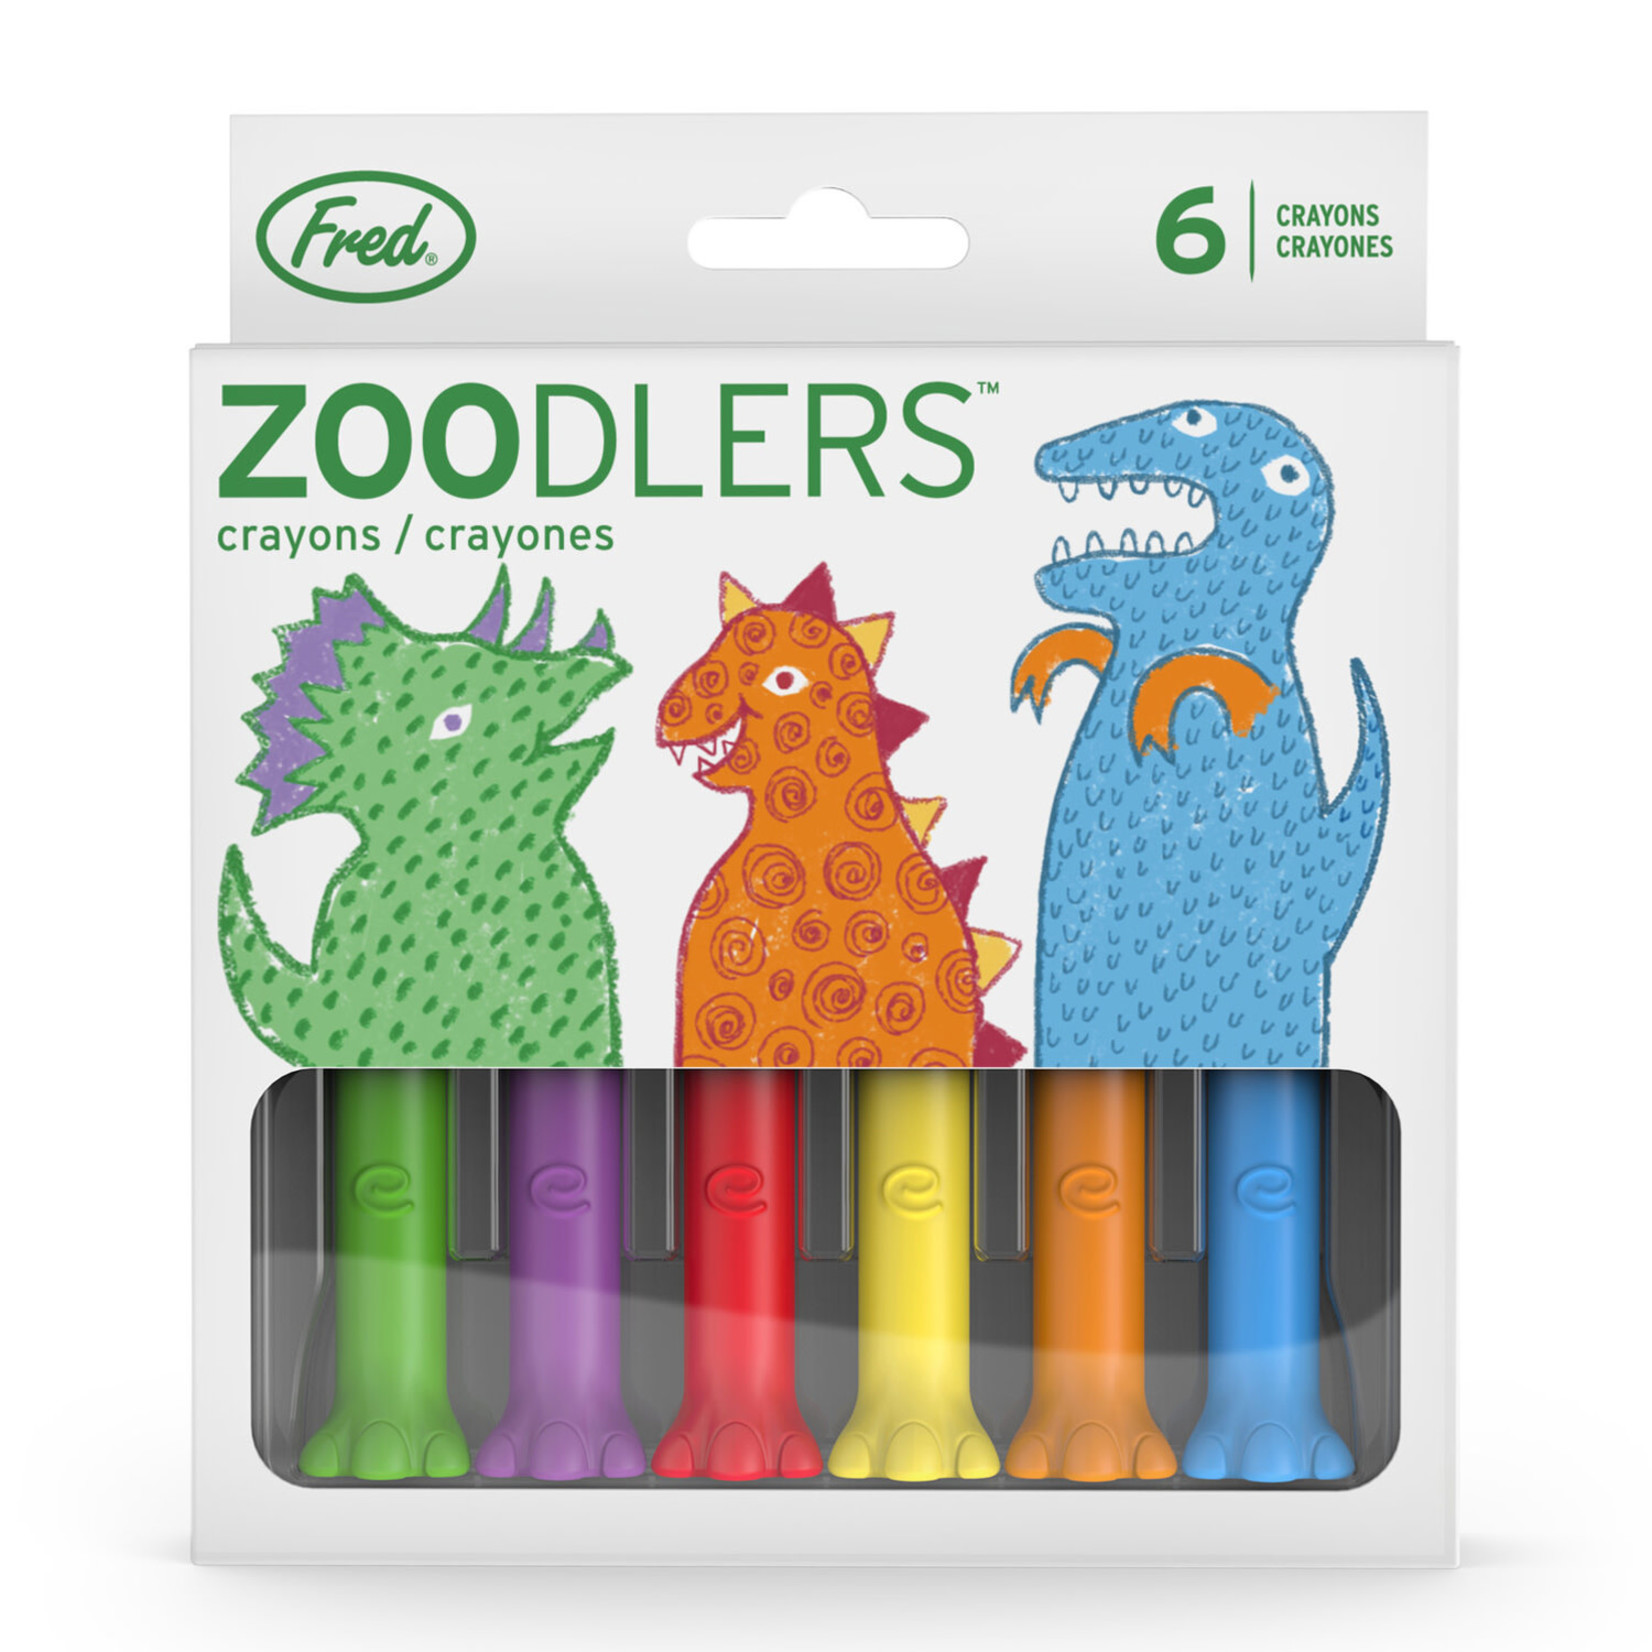 Zoodlers Crayons